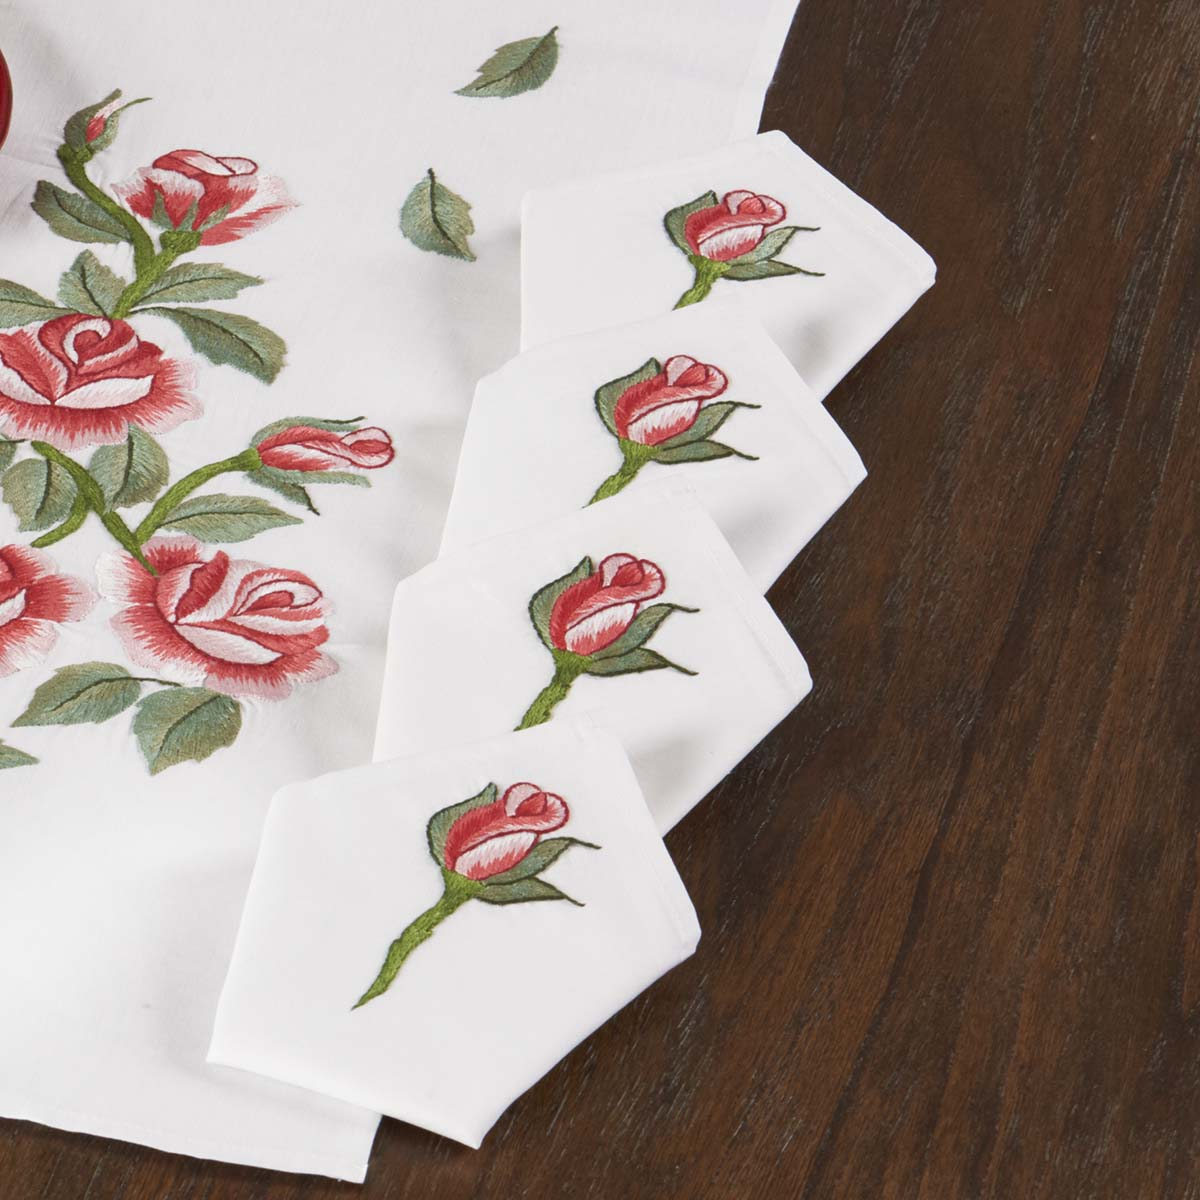 Herrschners® Red Rose Garden Napkins Stamped Embroidery